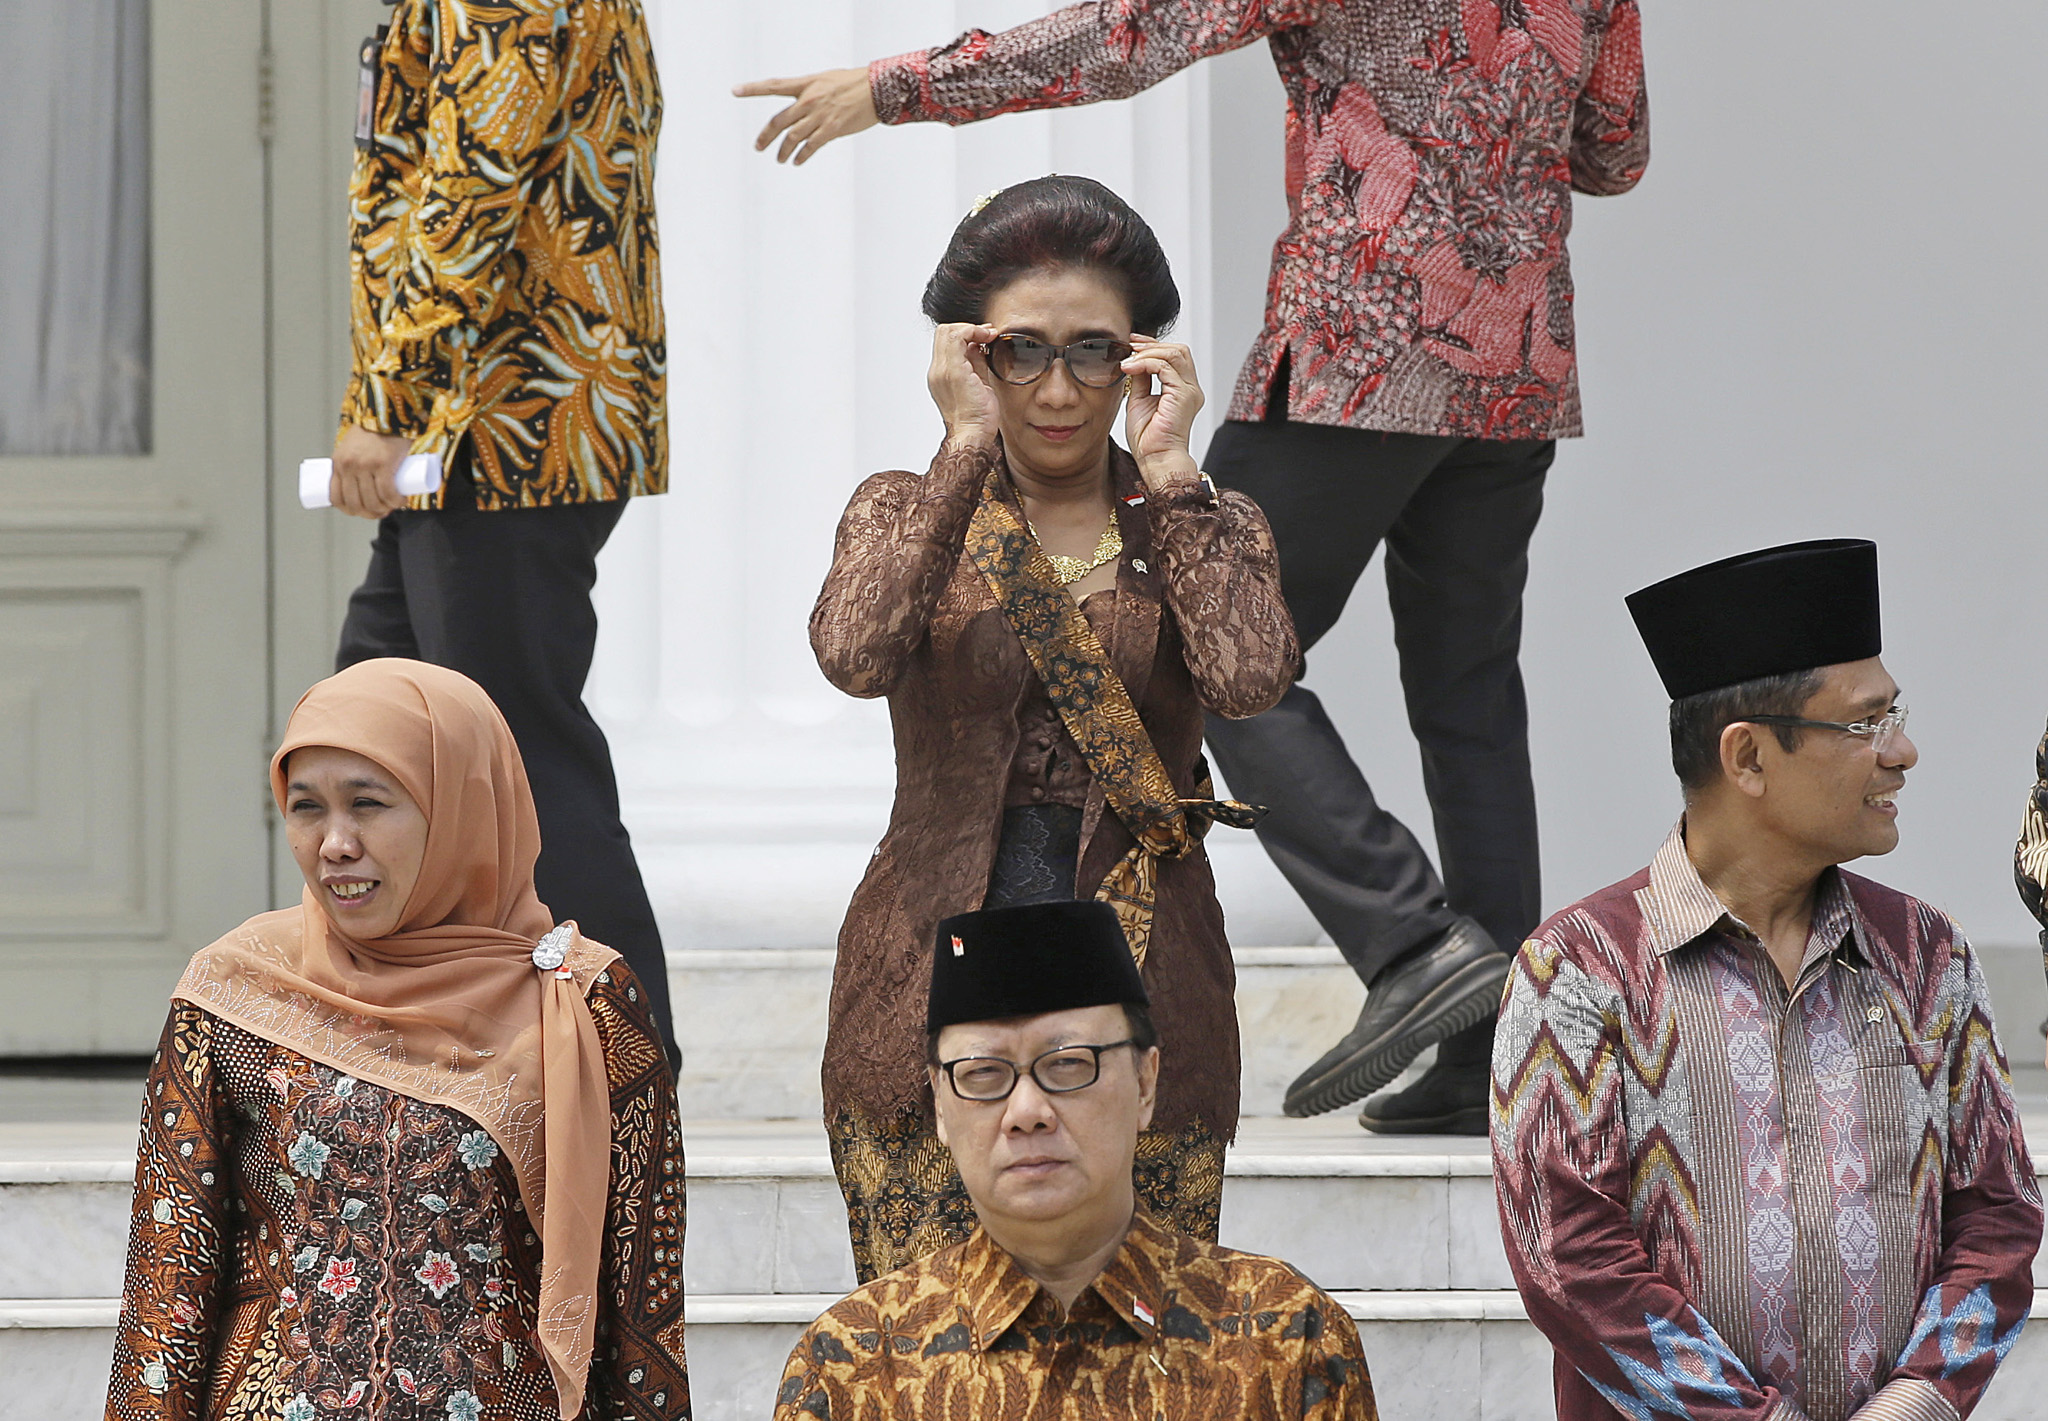 Susi Pudjiastuti...Indonesian Maritime and Fisheries Minister Susi Pudjiastuti, center, adjusts her sunglasses as she prepares for a photo session after the inauguration ceremony for the newly appointed Cabinet members at the presidential palace in Jakarta, Indonesia, Monday, Oct. 27, 2014